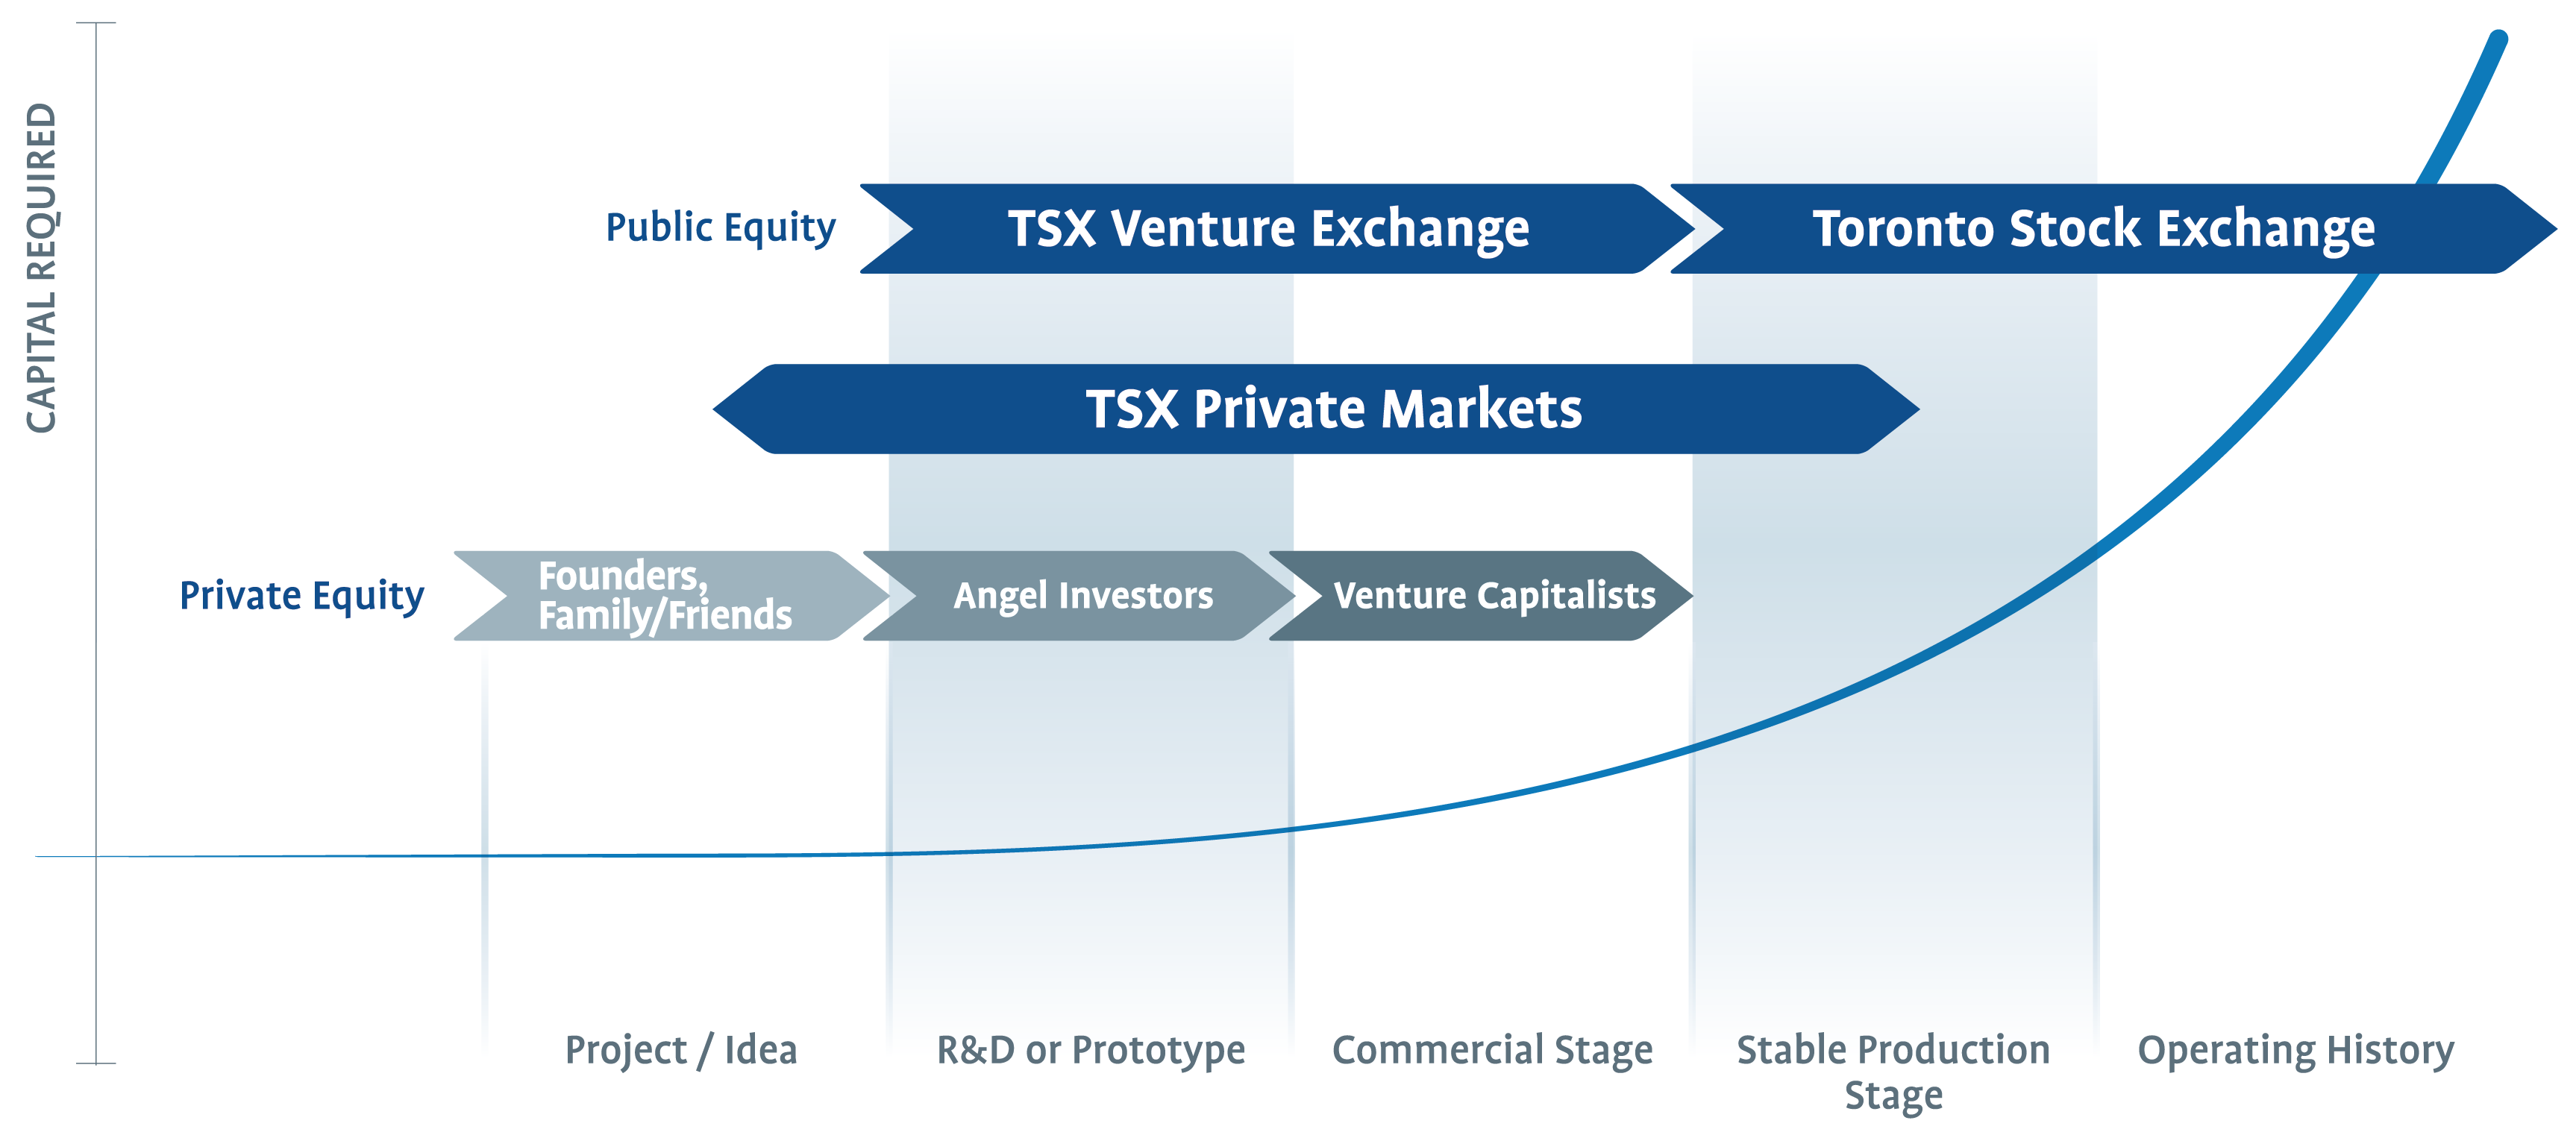 Tmx tsx tsxv considerations for getting listed capital continuum biocorpaavc Images